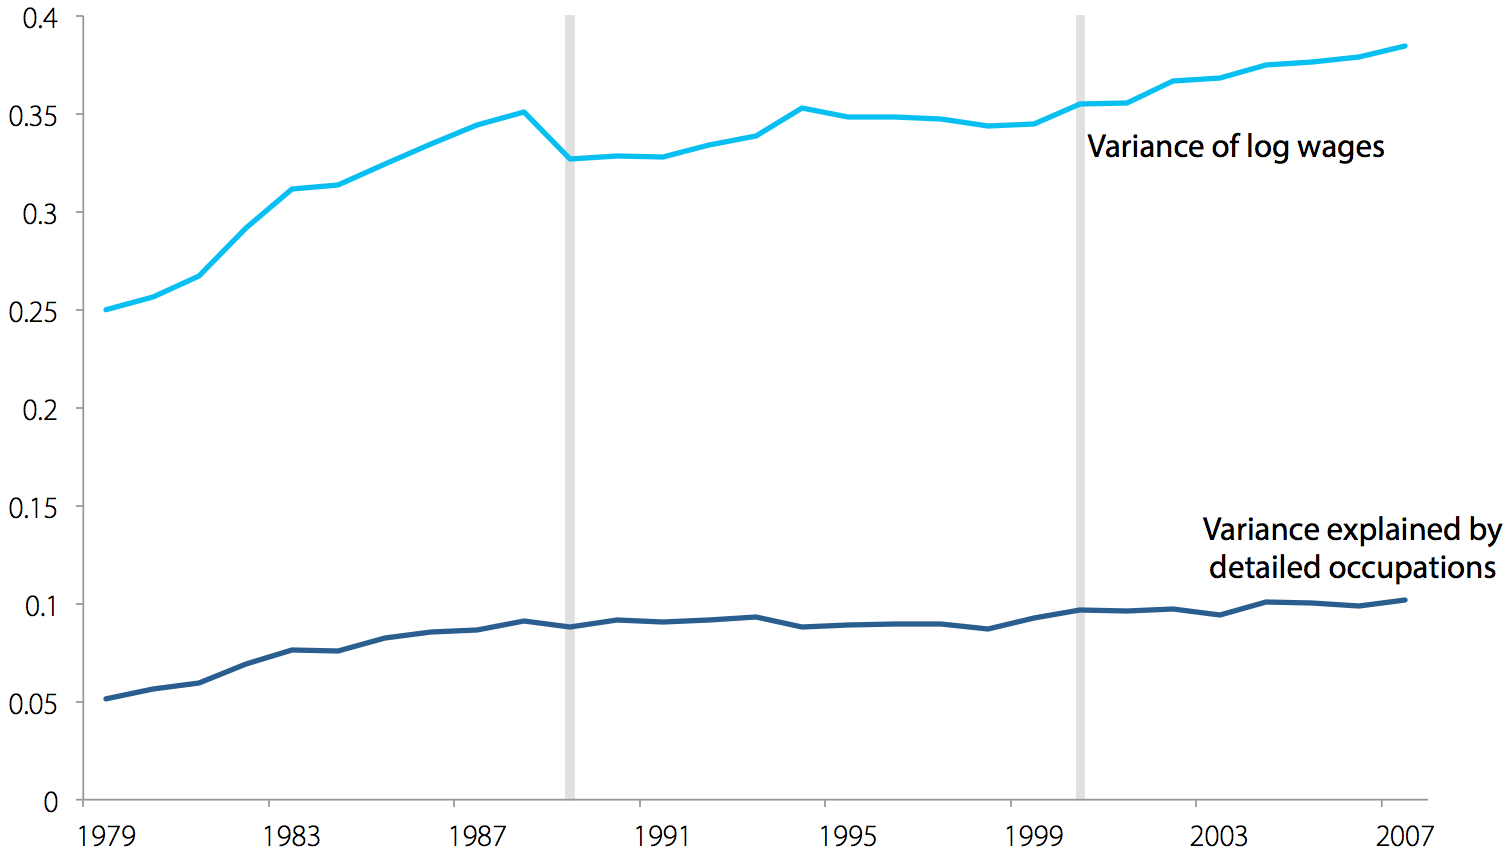 Wage variance explained by detailed occupations for men, 1979–2007